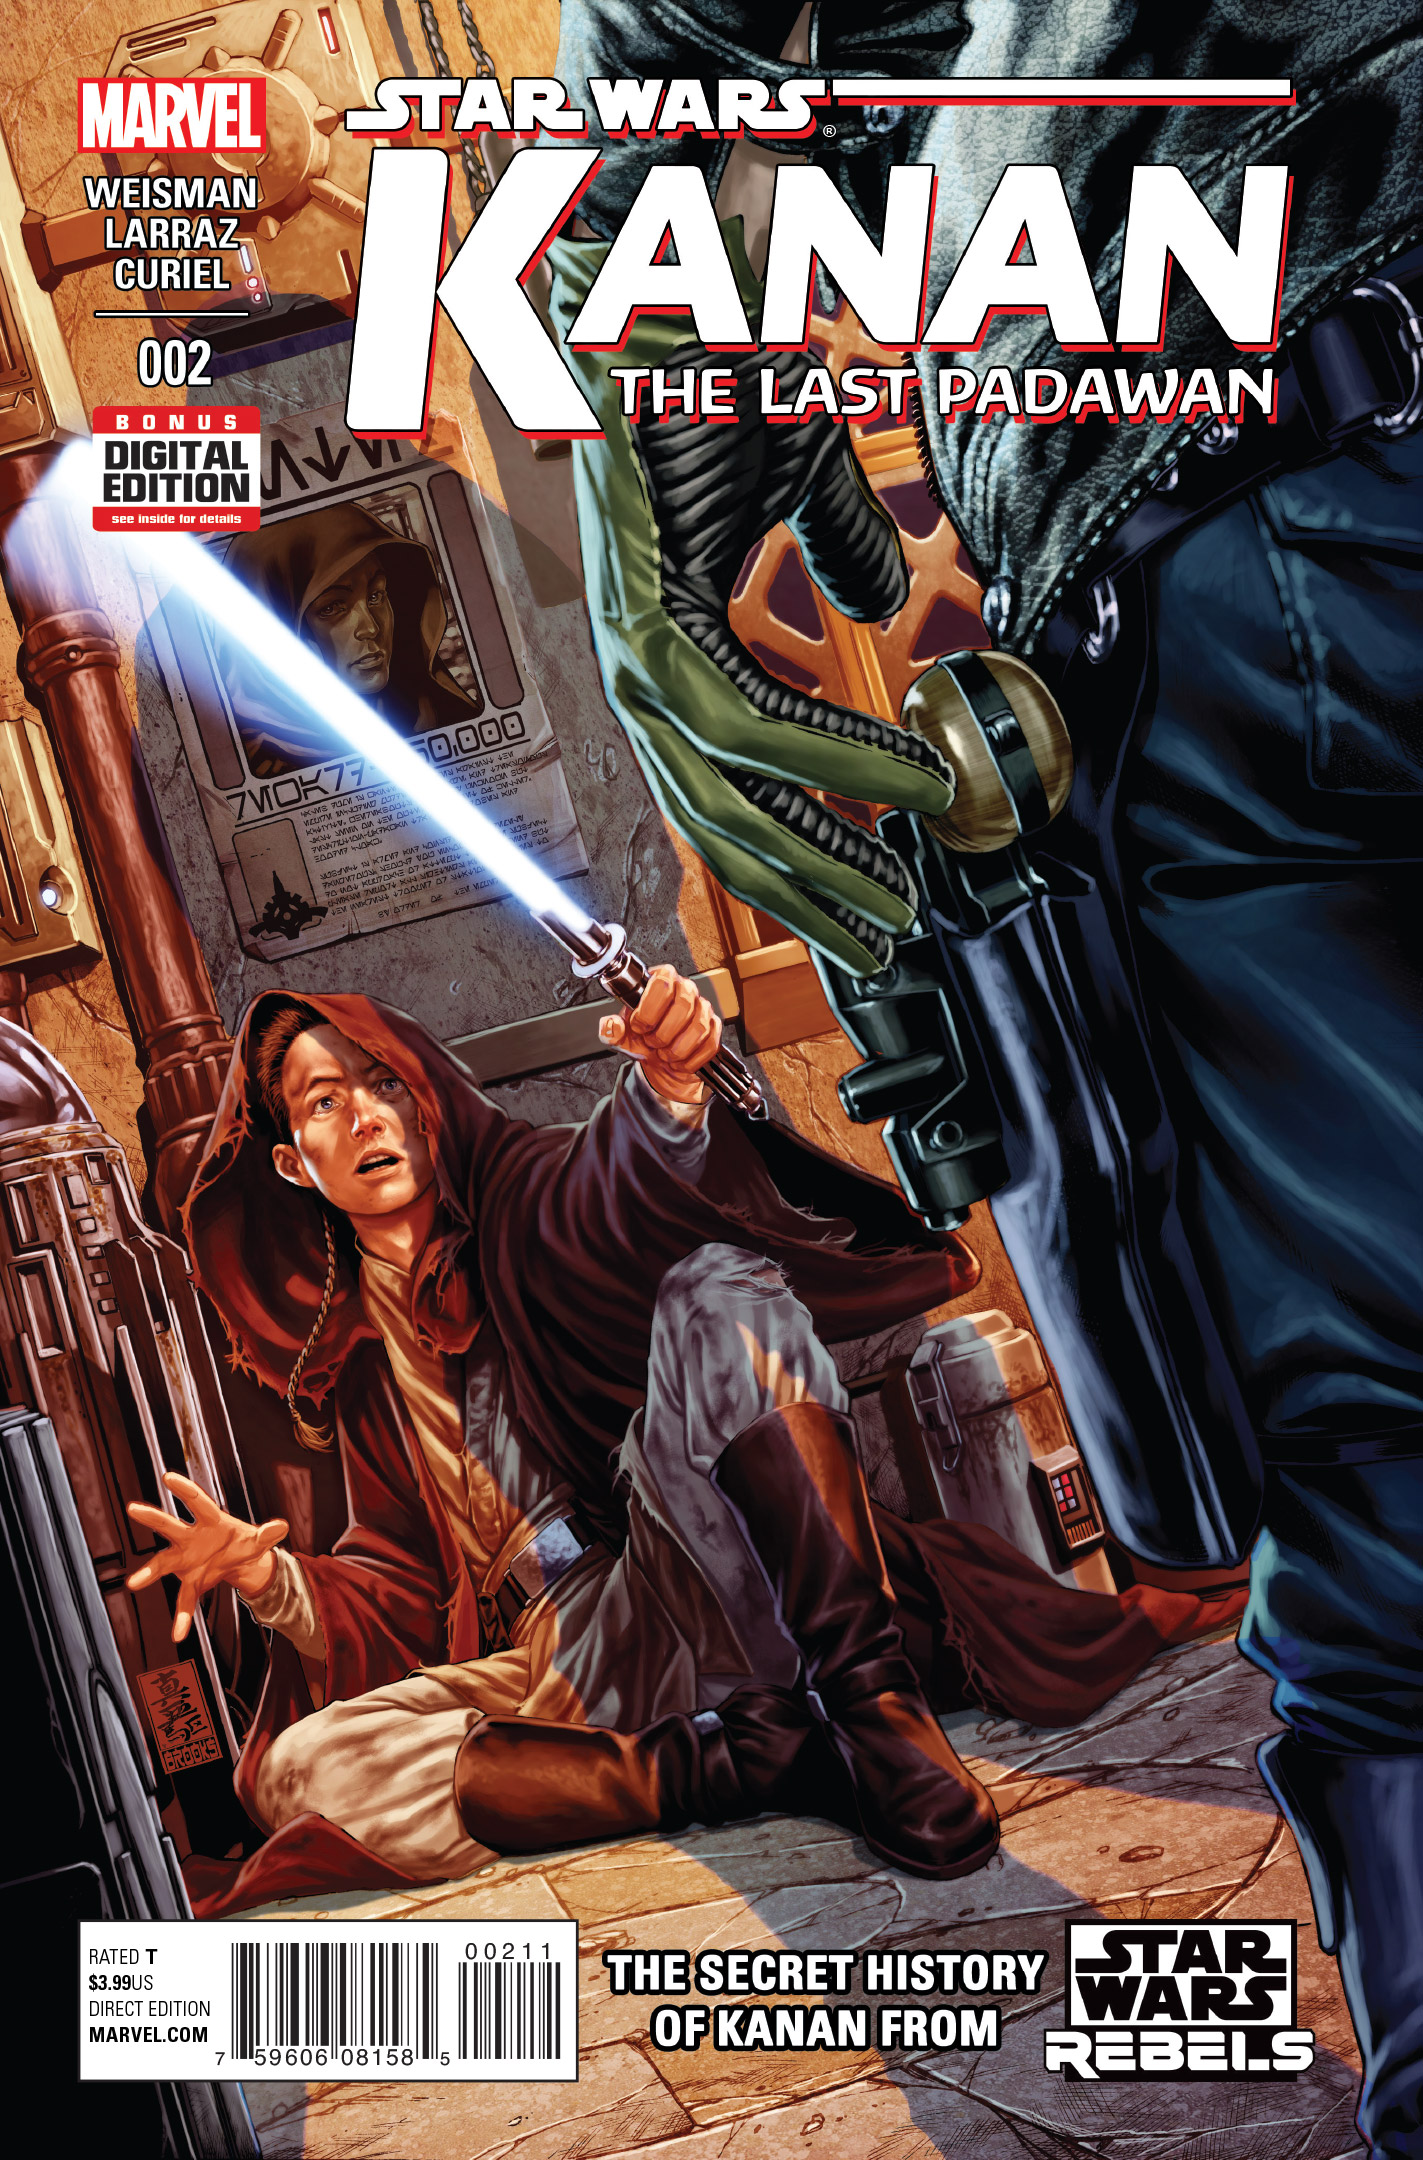 Star_Wars_Kanan_The_Last_Padawan_2_cover